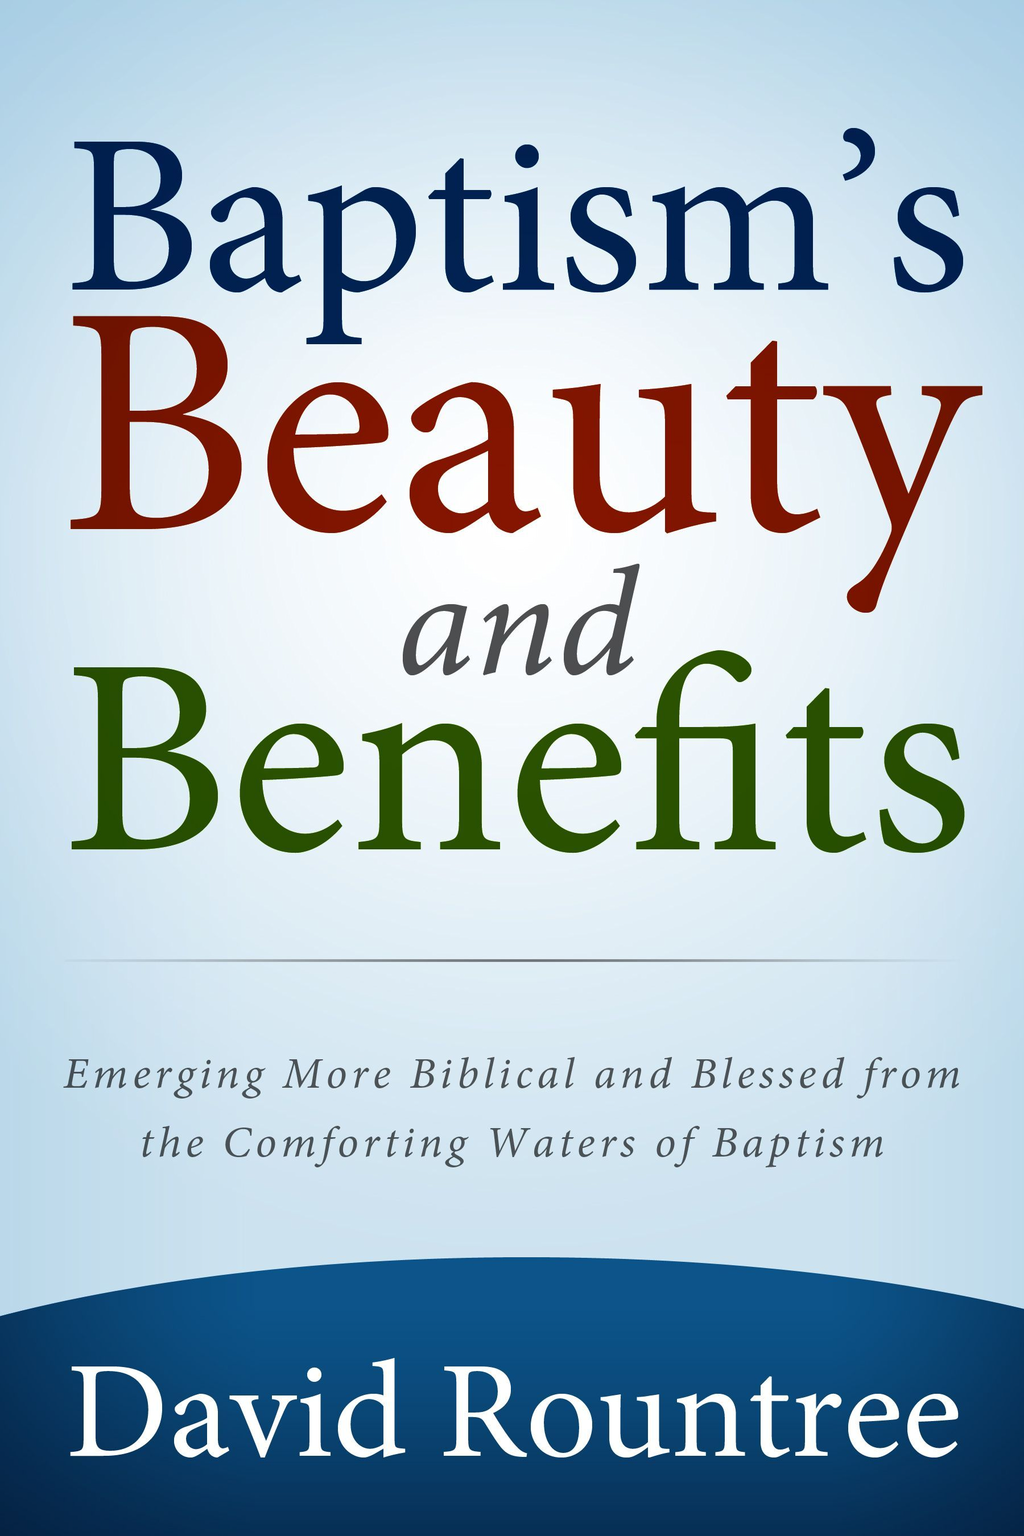 Baptism's Beauty and Benefits: Emerging more Biblical and Blessed from the Comforting Waters of Baptism